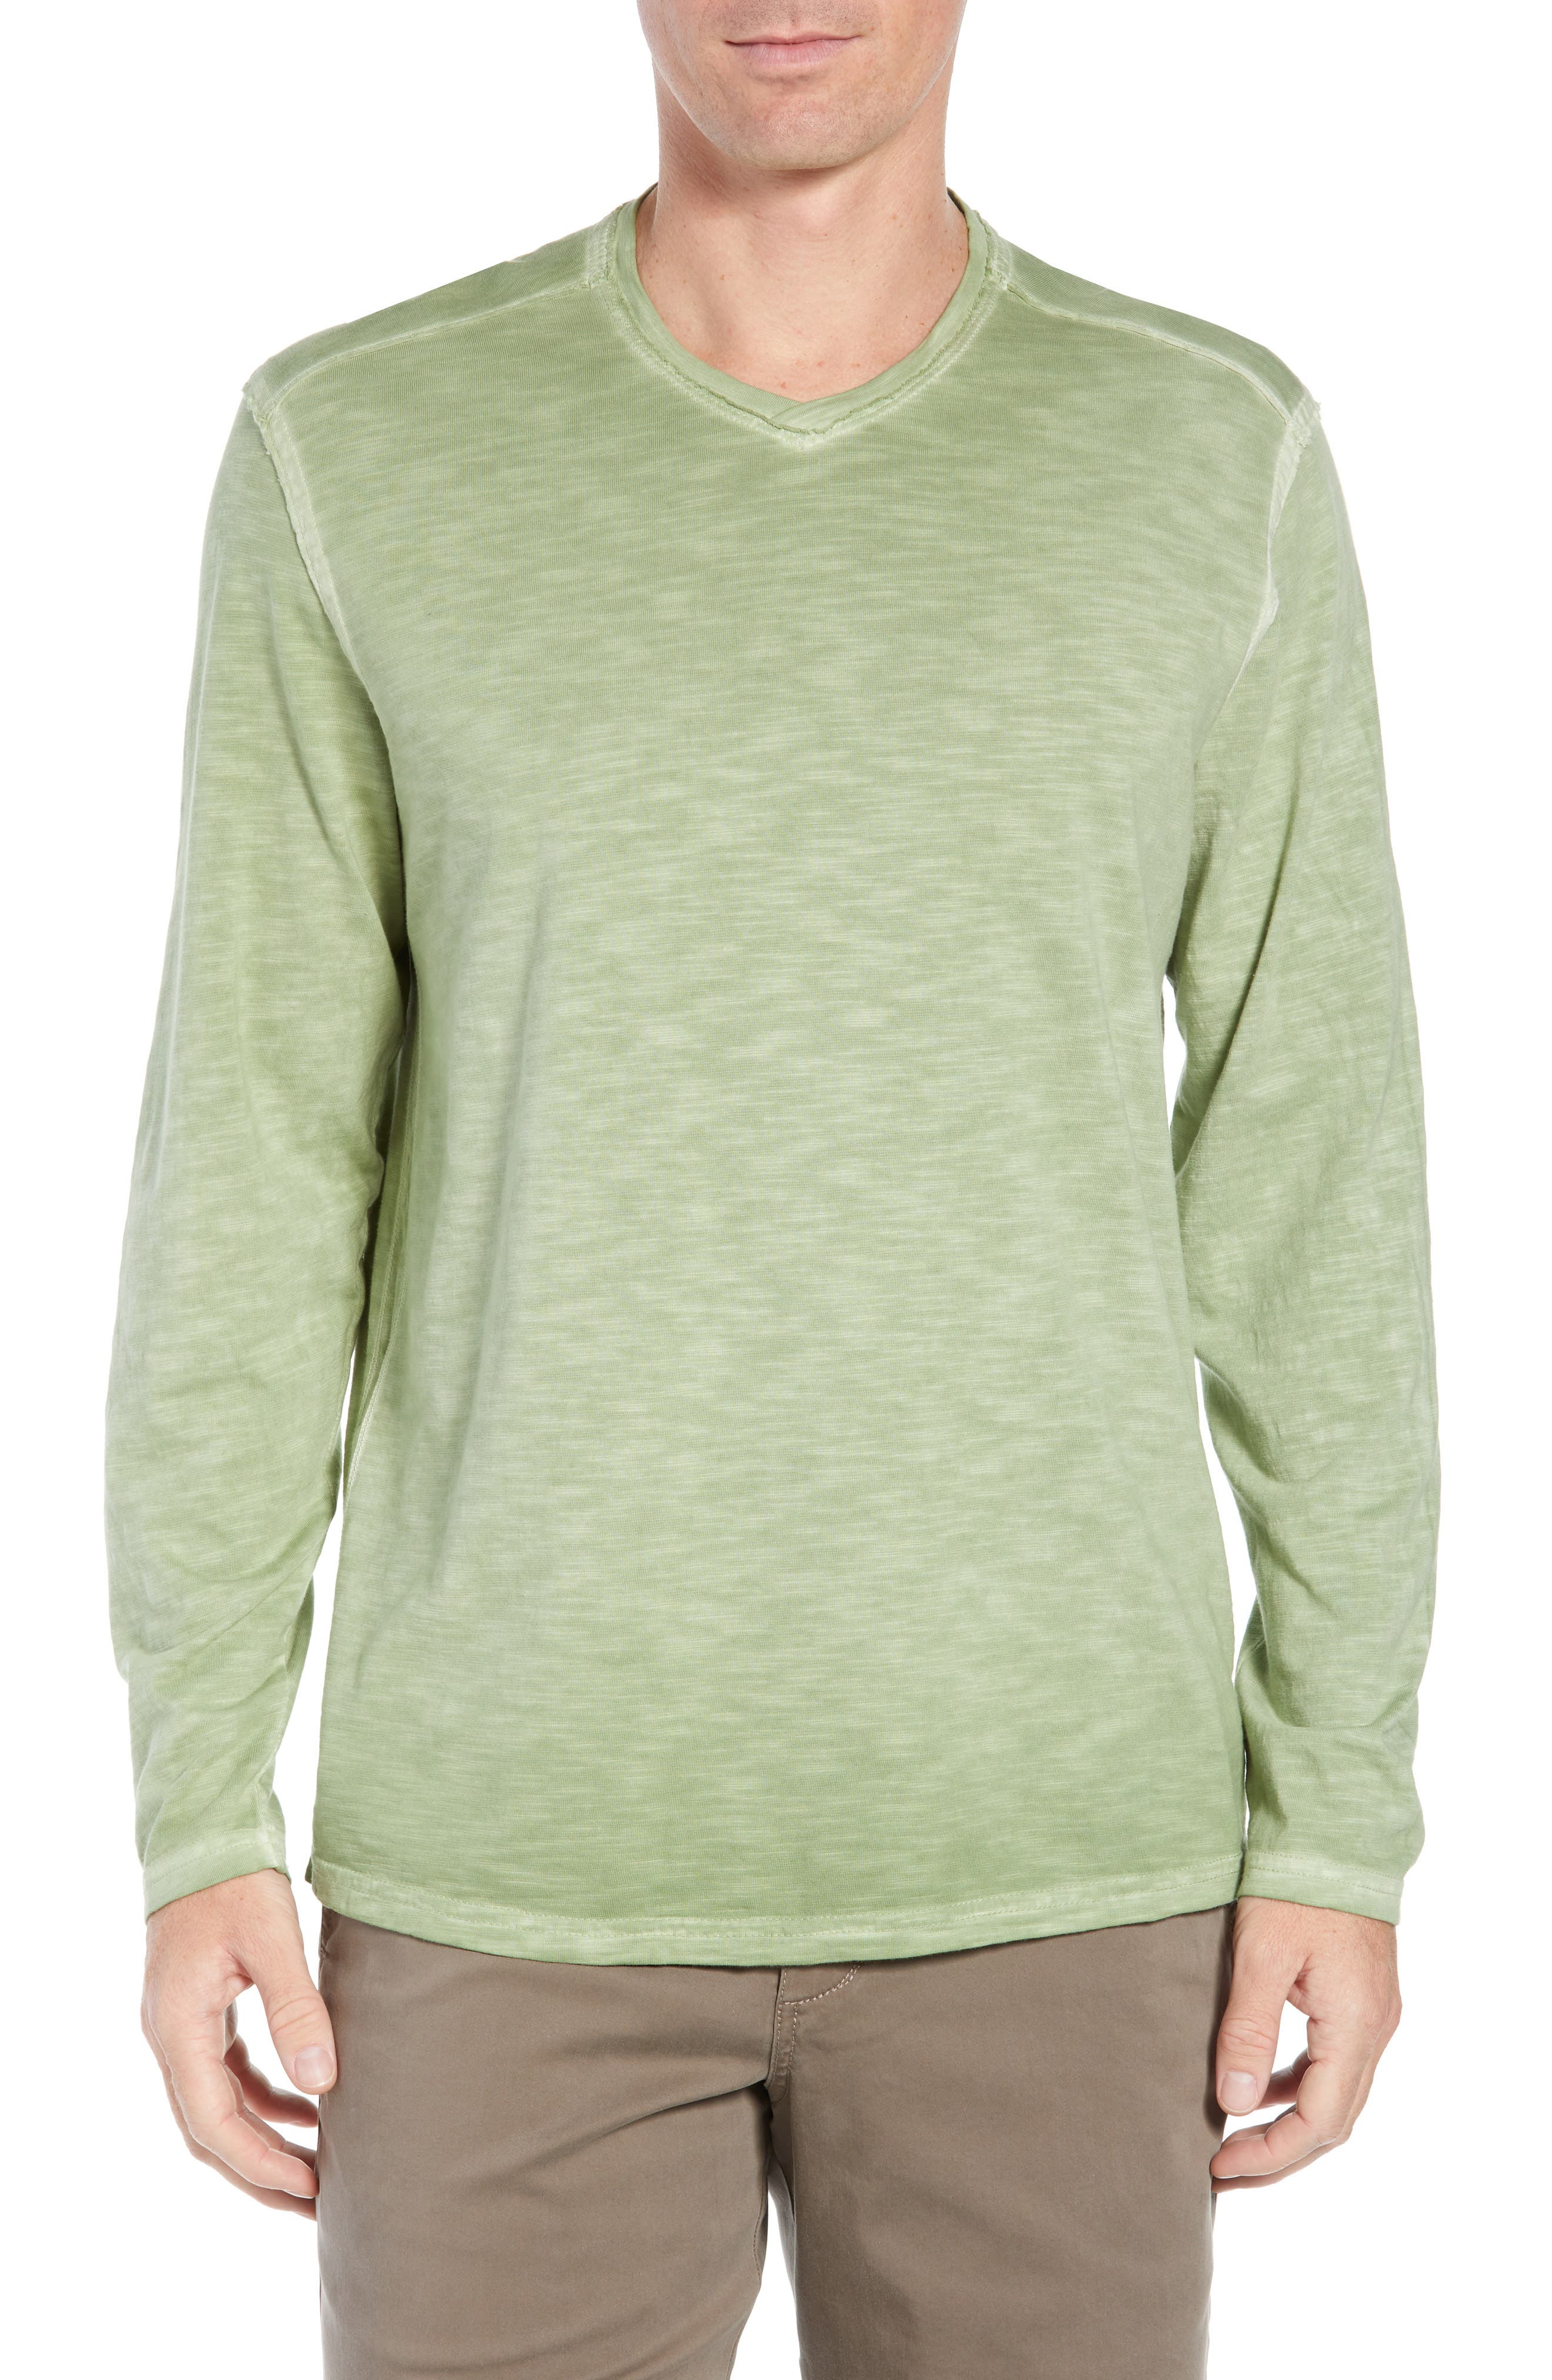 Suncoast Shores Long Sleeve V-Neck T-Shirt,                             Main thumbnail 1, color,                             WILD CLOVER